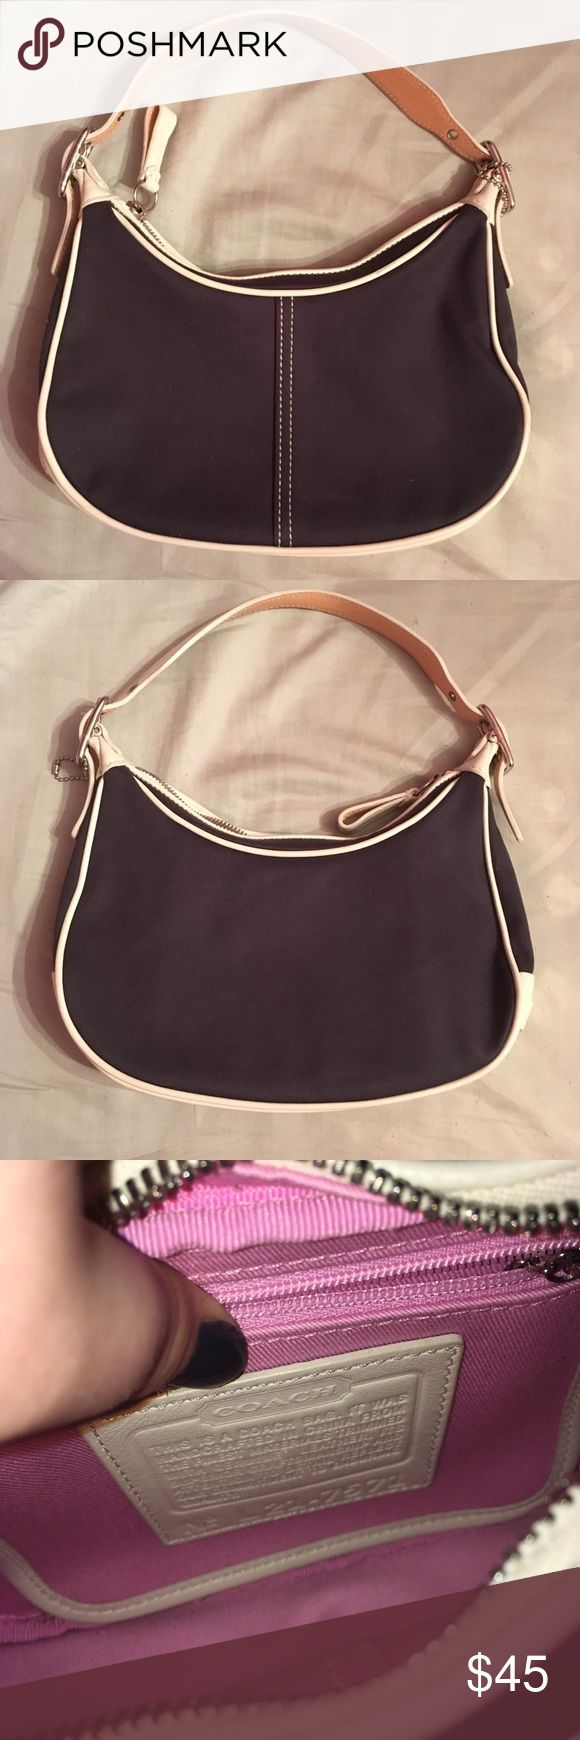 """Coach Hobo Bag Looks Brand New I've only used it like once, so it is just like new almost. It looks great, and I can't find anything wrong with it. I don't see any stains or flaws. One of the pictures has a part on the outside of the purse that says """"Coach Leatherware."""" The inside of the purse is pink. The outside is navy blue and white. Coach Bags Hobos"""